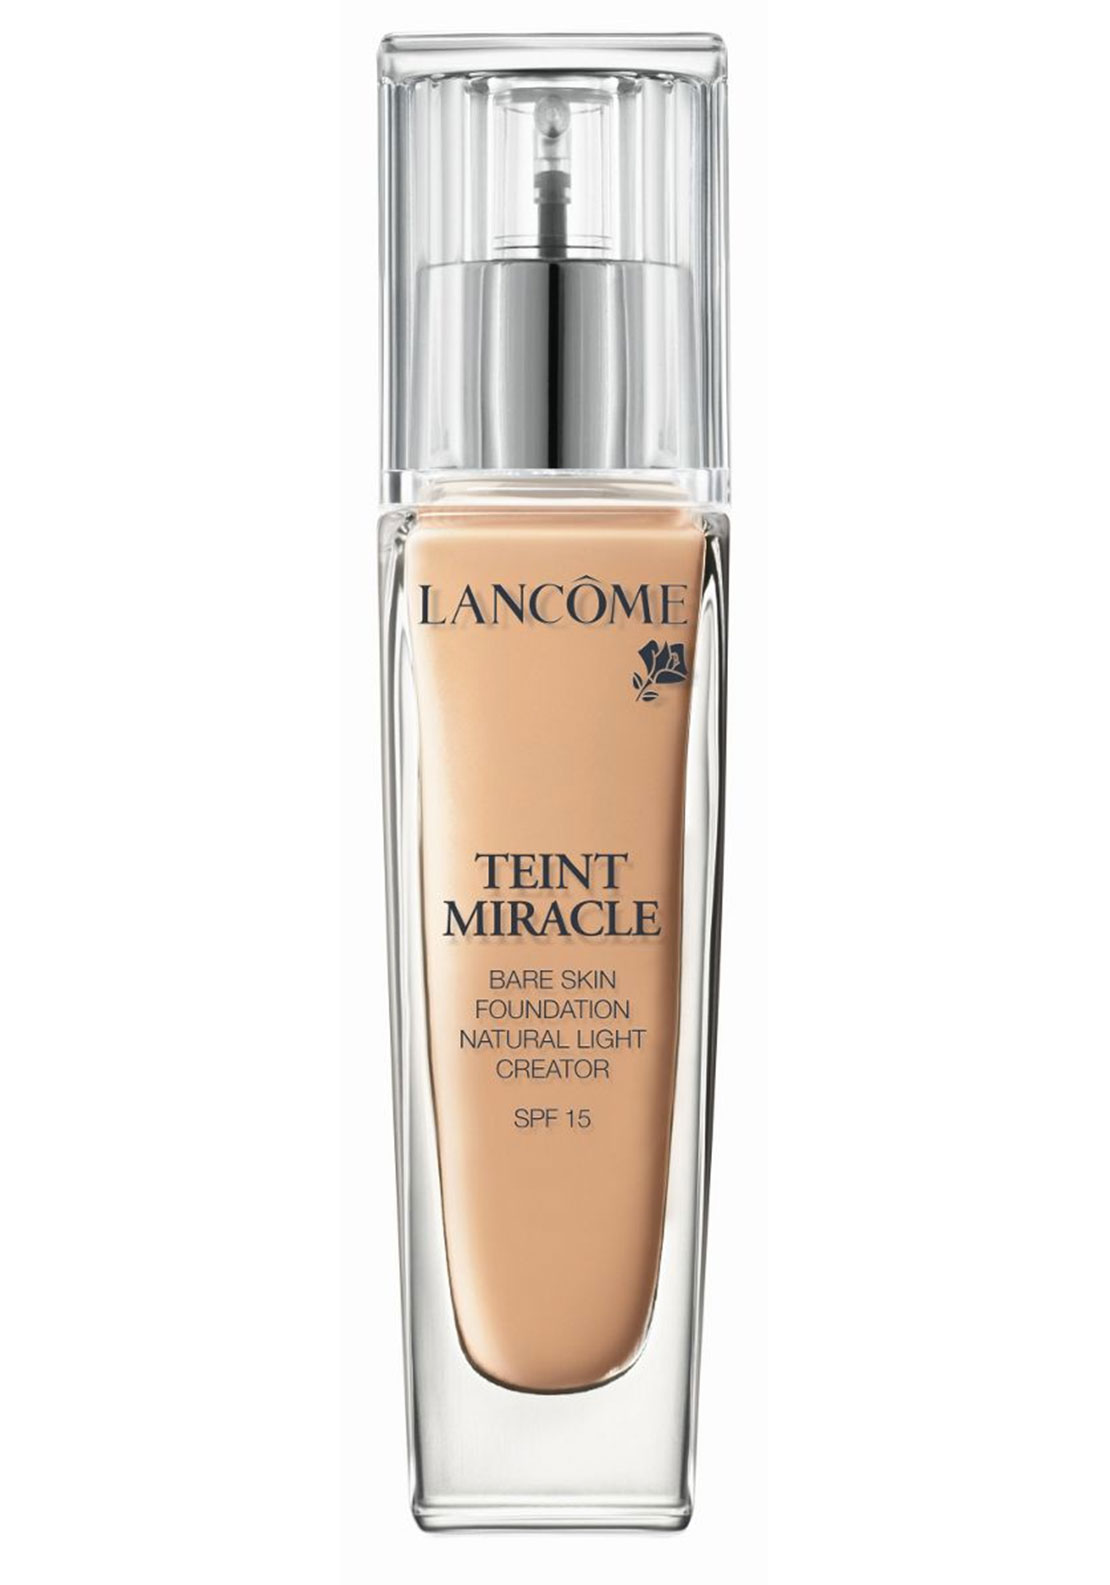 Lancôme Teint Miracle Foundation 045, Sable Beige